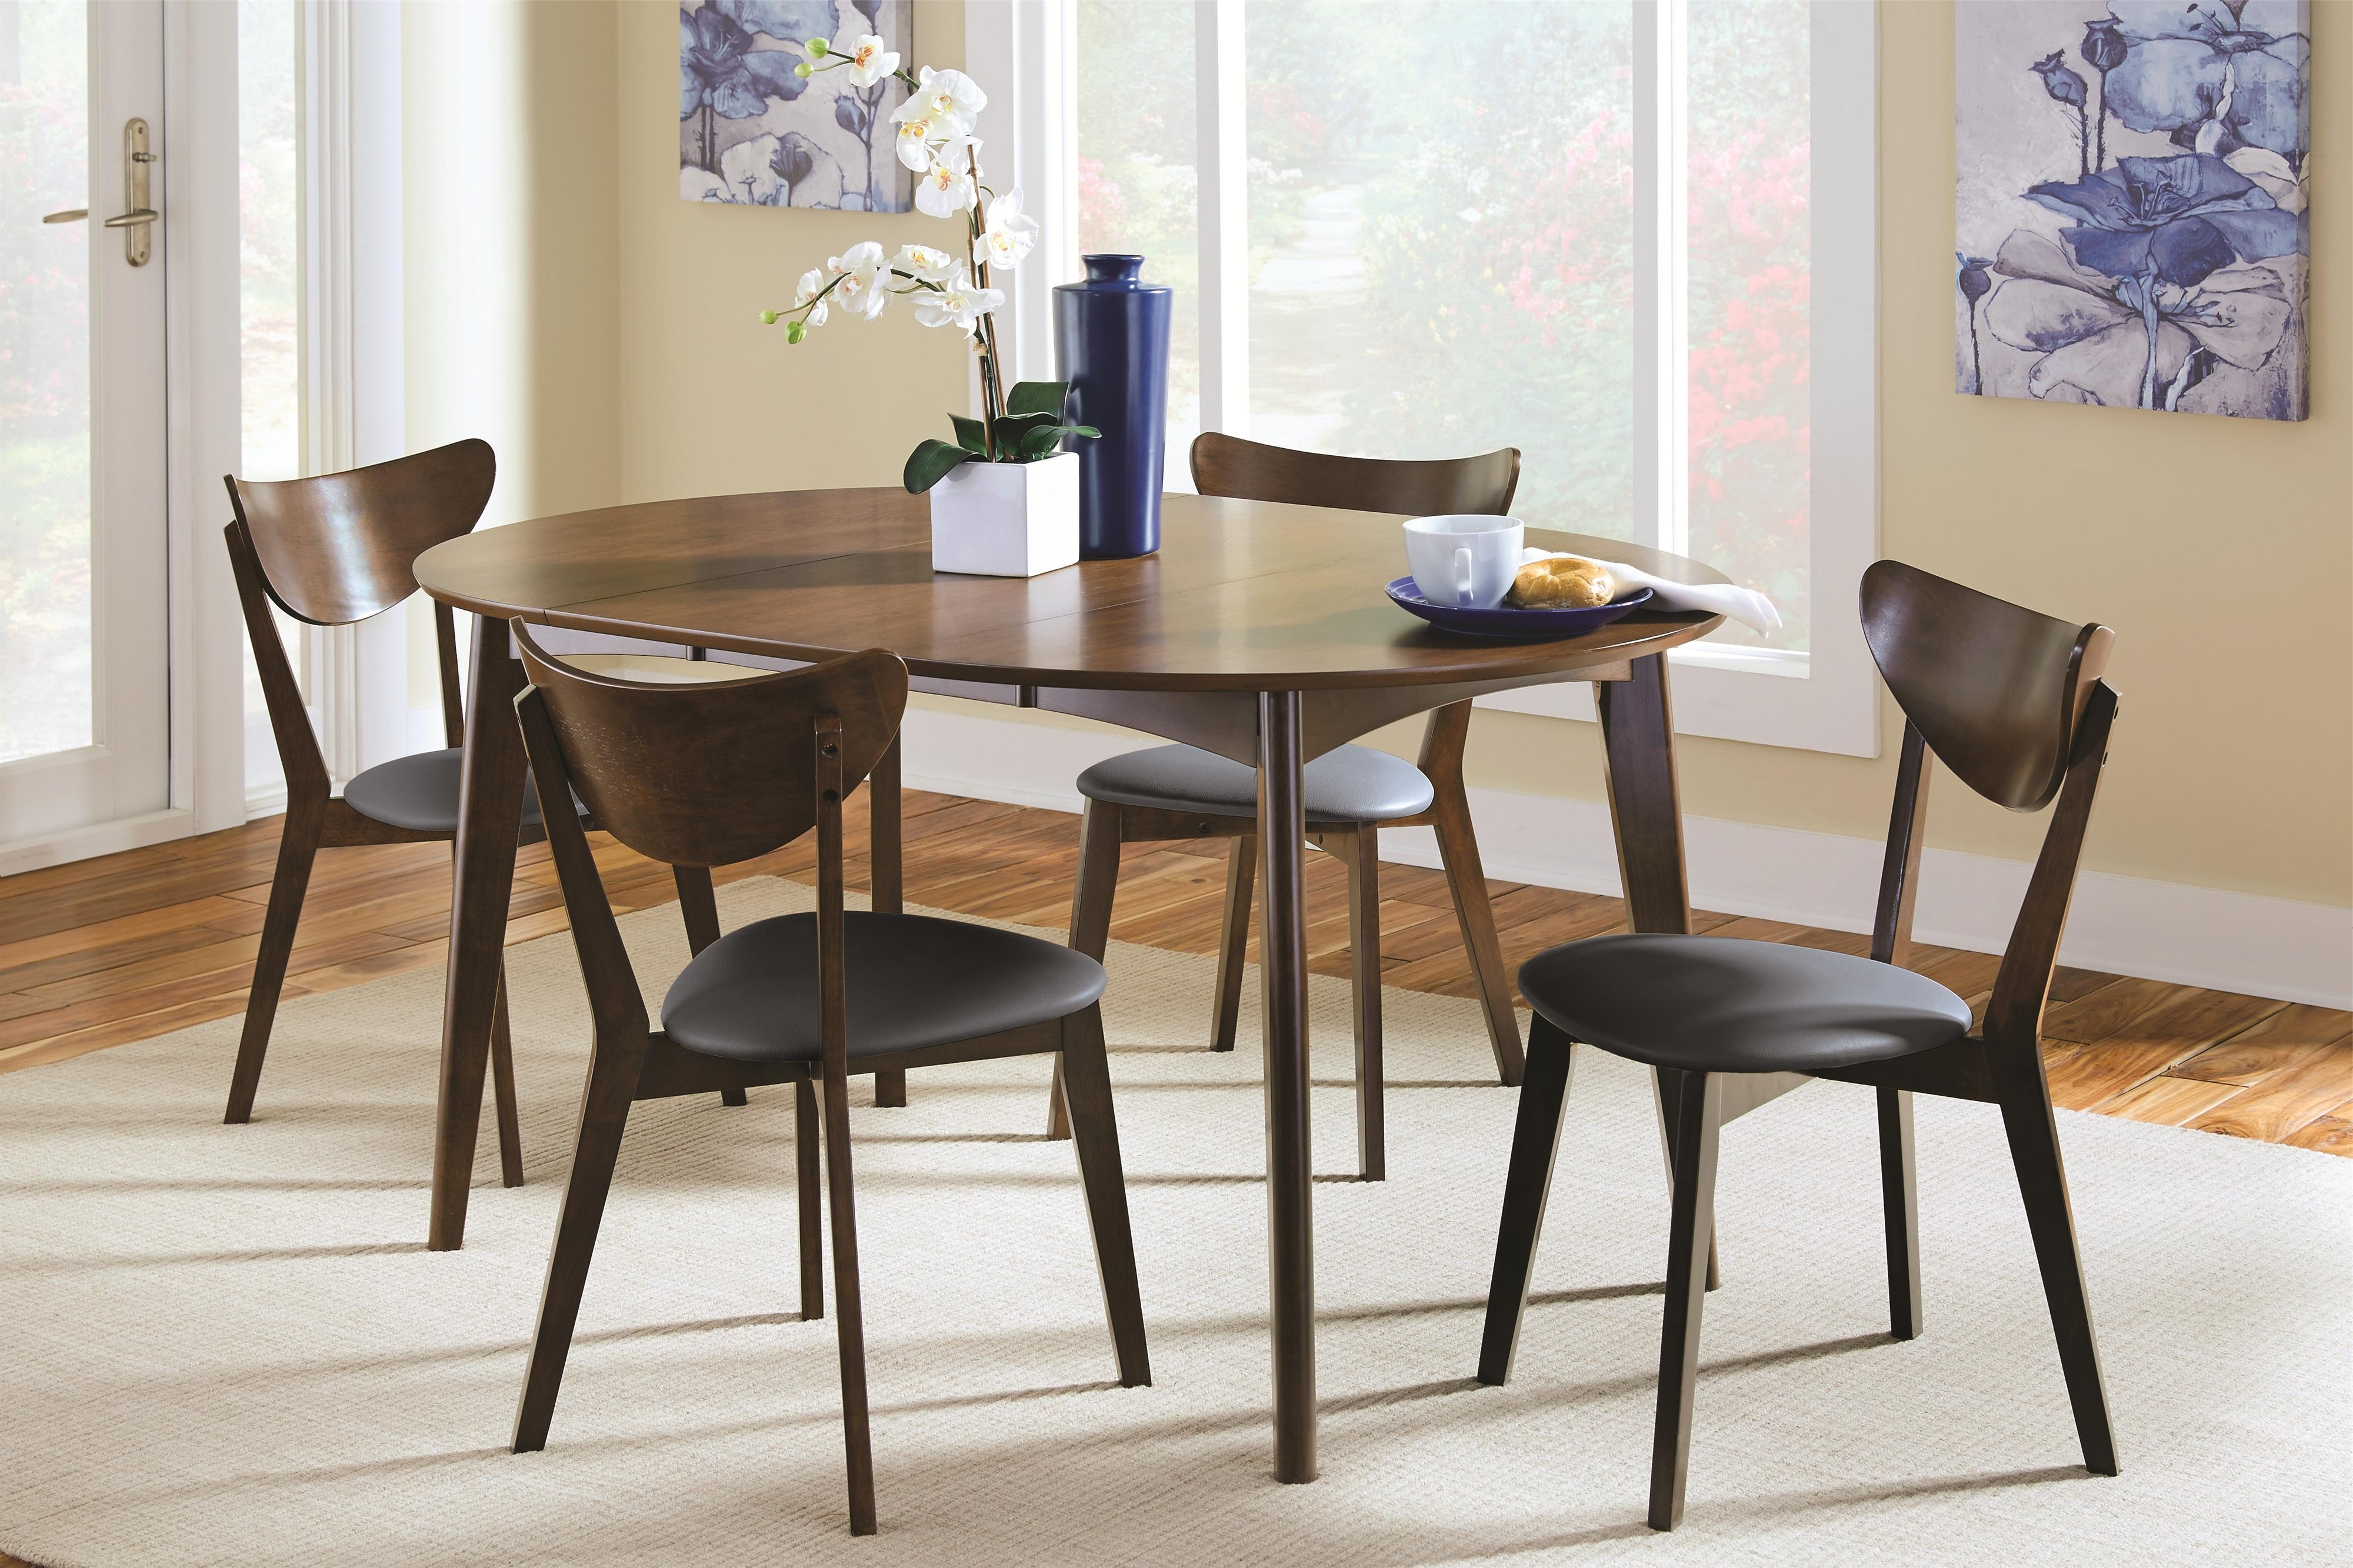 Modern Dining Room Furniture Pertaining To Most Current Coaster Malone Mid Century Modern 5 Piece Solid Wood Dining Set (View 15 of 25)